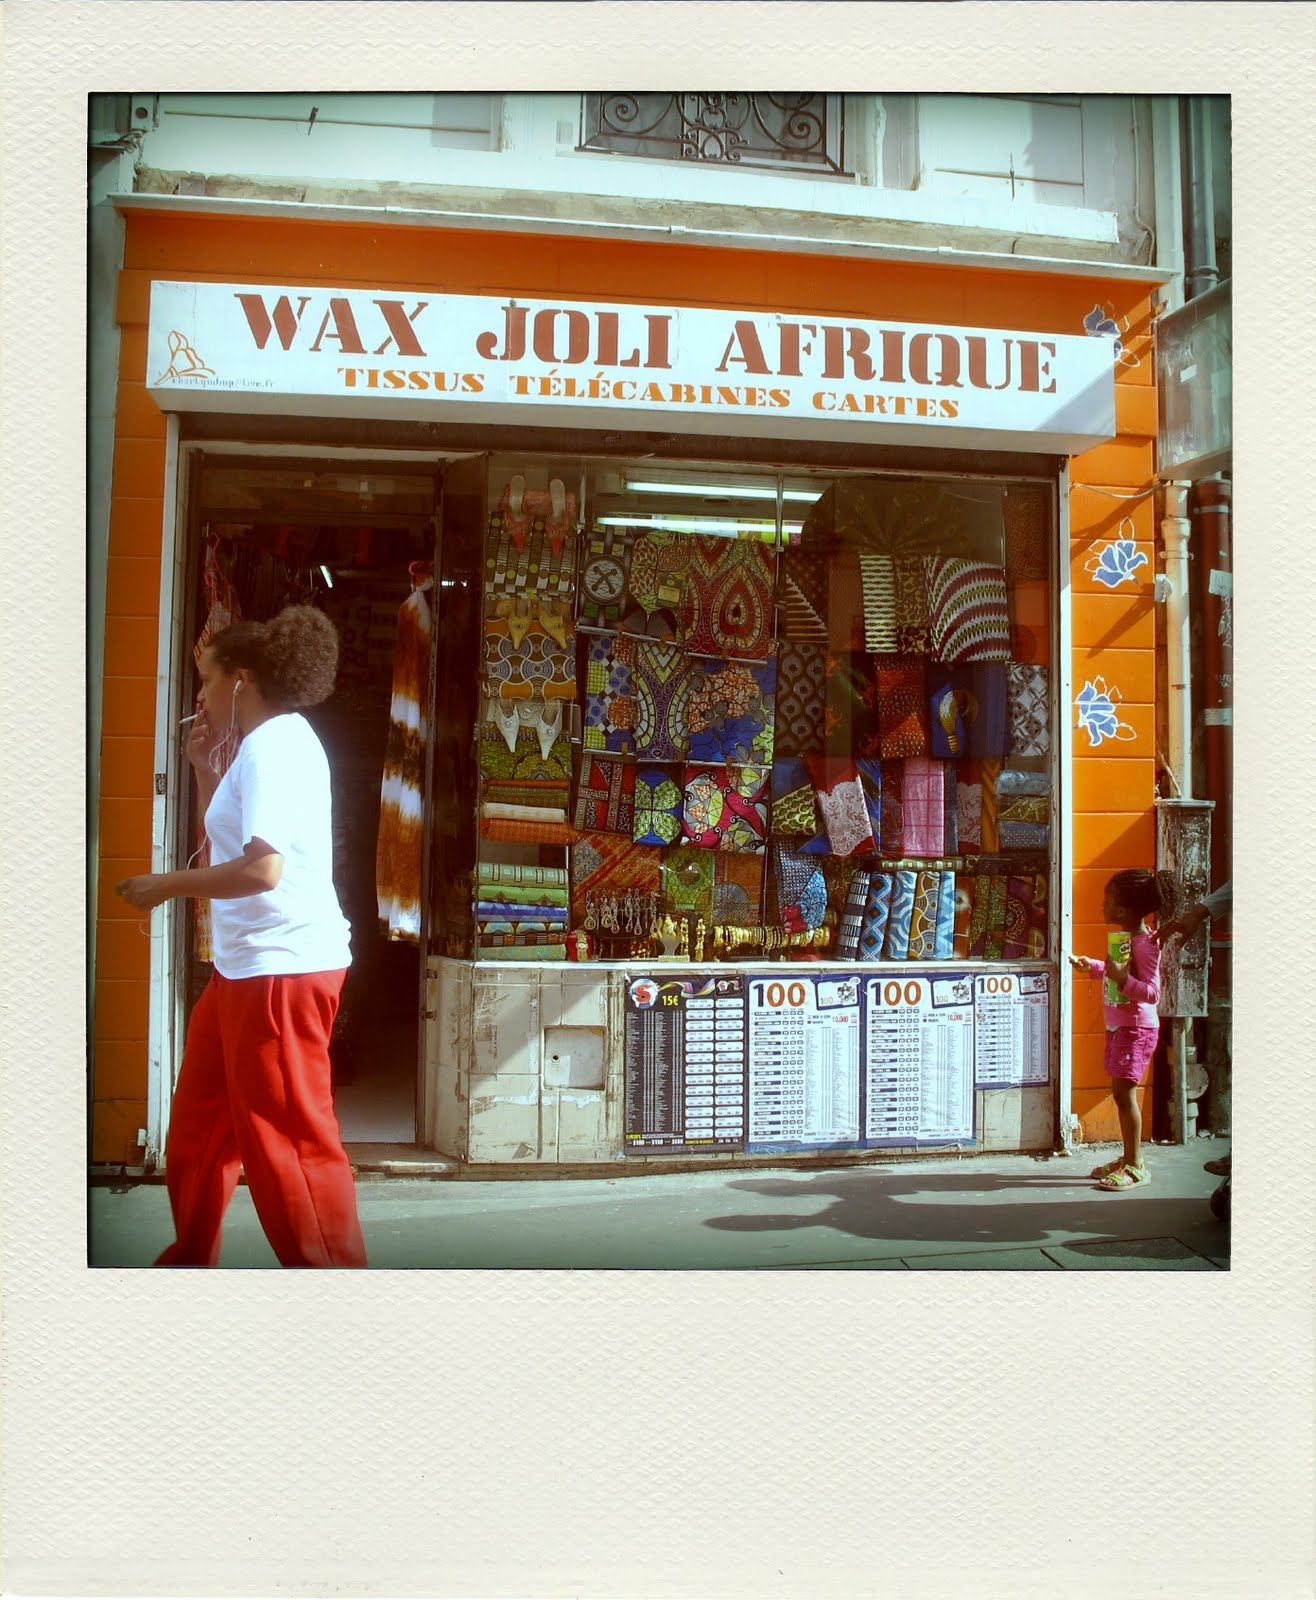 Nothing but the wax barbes city the place to be pour acheter du wax - Ou acheter du tissu a paris ...